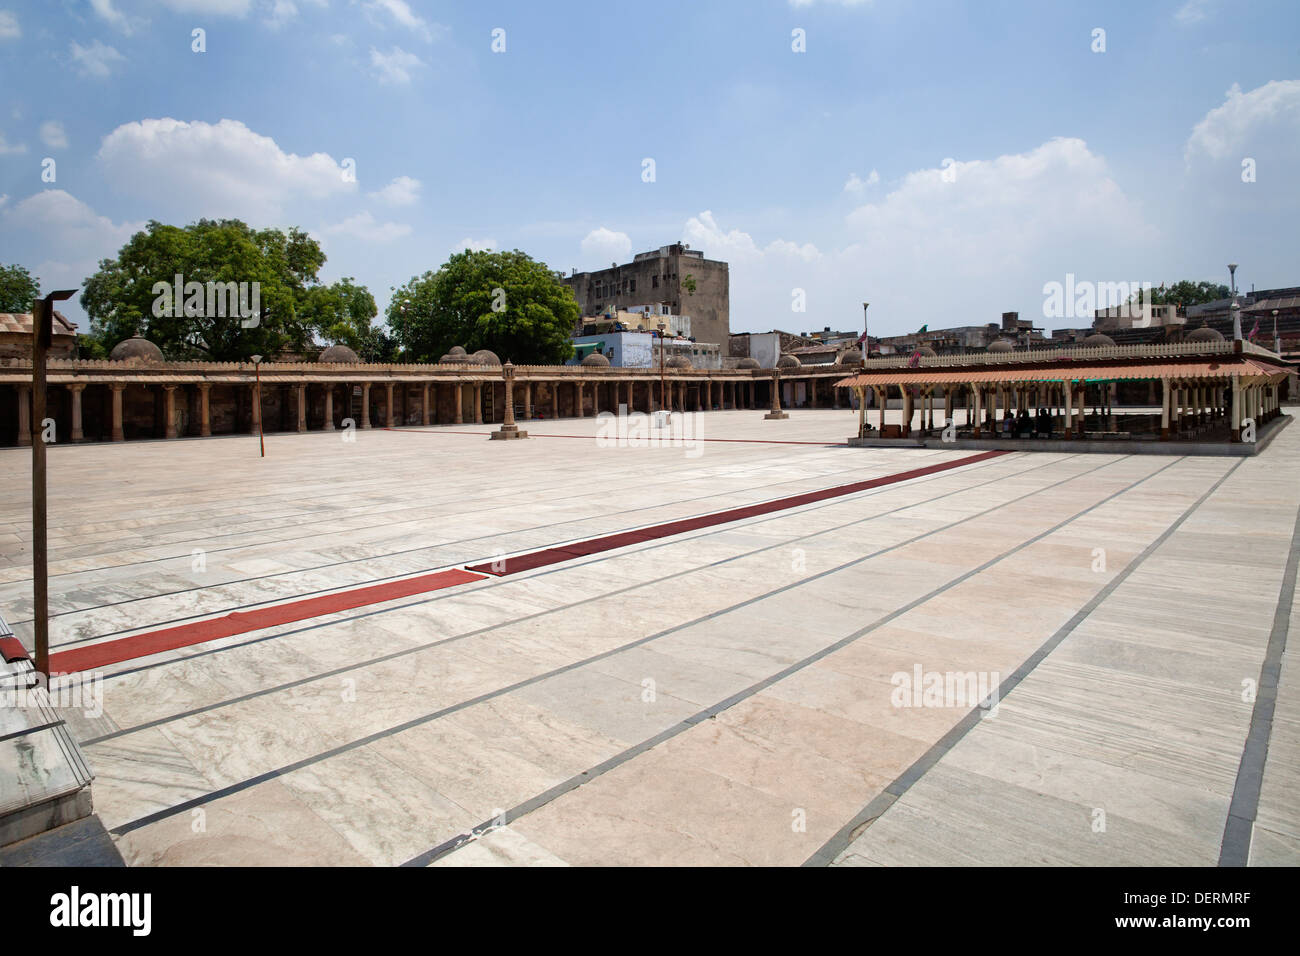 Courtyard of a mosque, Jama Masjid, Ahmedabad, Gujarat, India - Stock Image